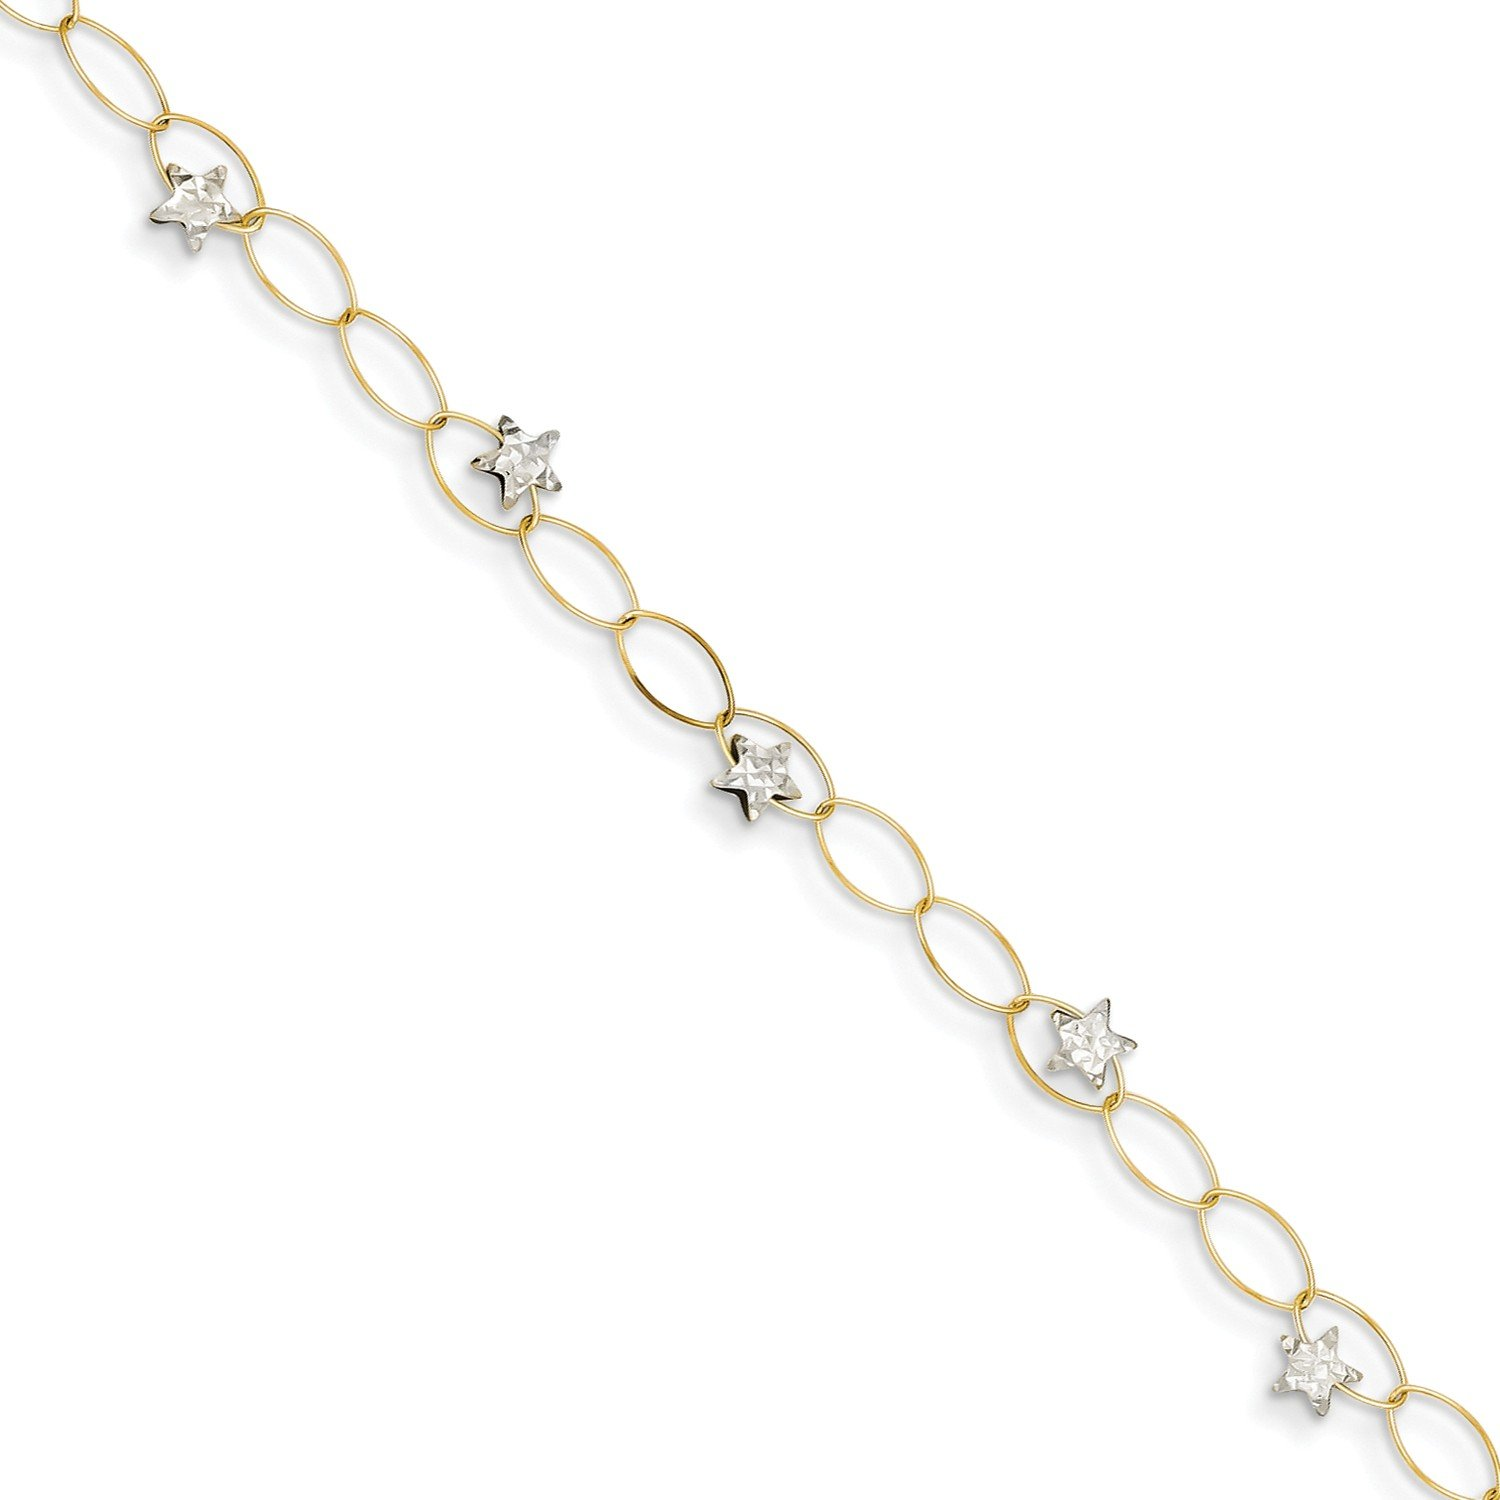 Roy Rose Jewelry 14K Two-tone Gold Puff Stars Bracelet ~ Length 7.25'' inches